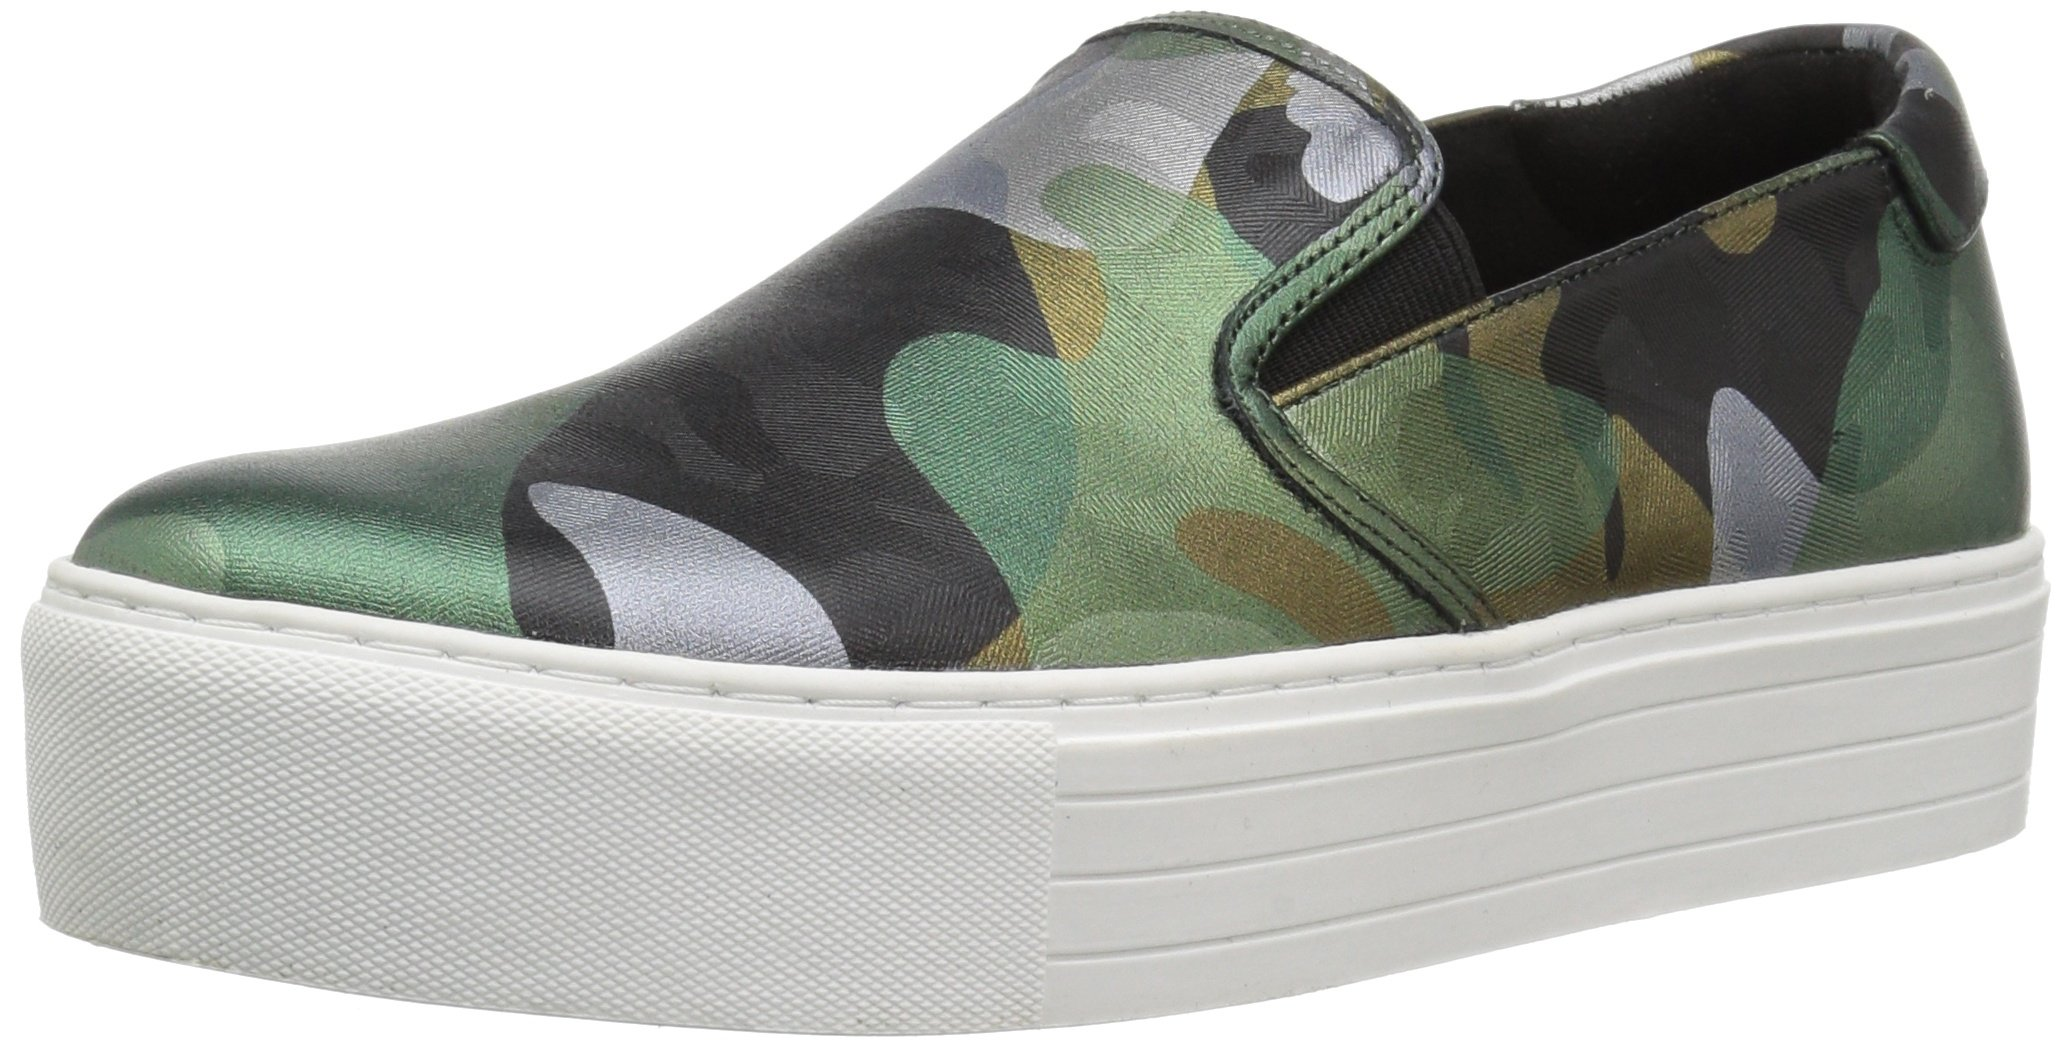 Kenneth Cole New York Women's Joanie Platform Slip Techni-Cole 37.5 Lining Sneaker, Green/Multi, 5 Medium US